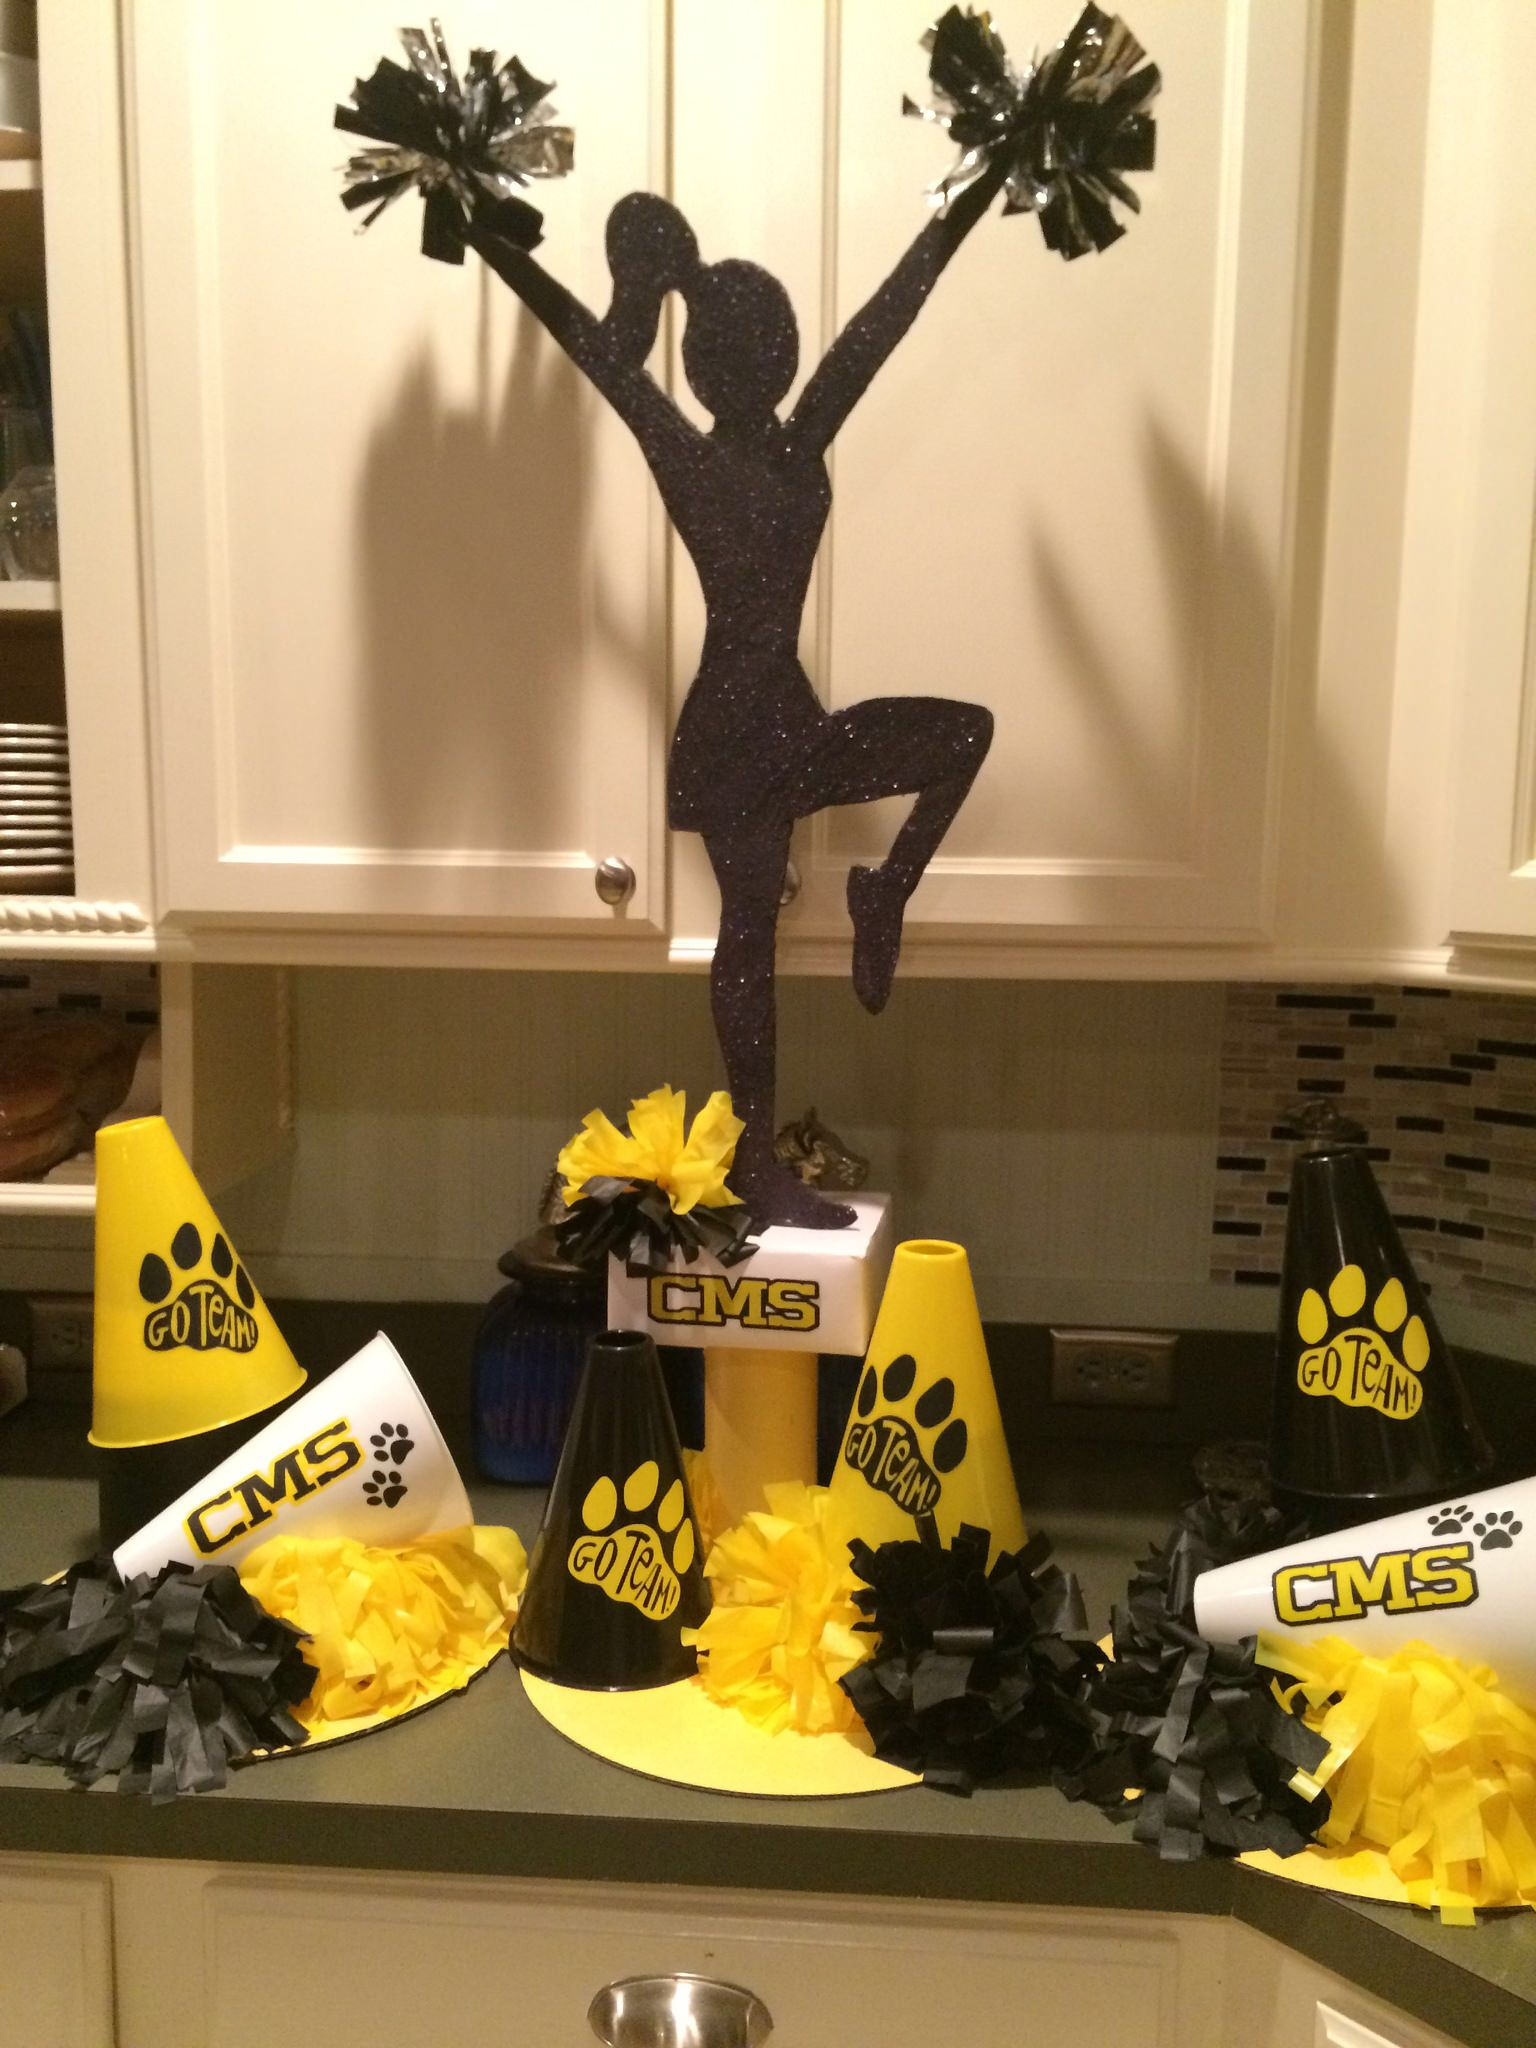 Cheer centerpieces for CMS cheer camp #cheercamp # ...